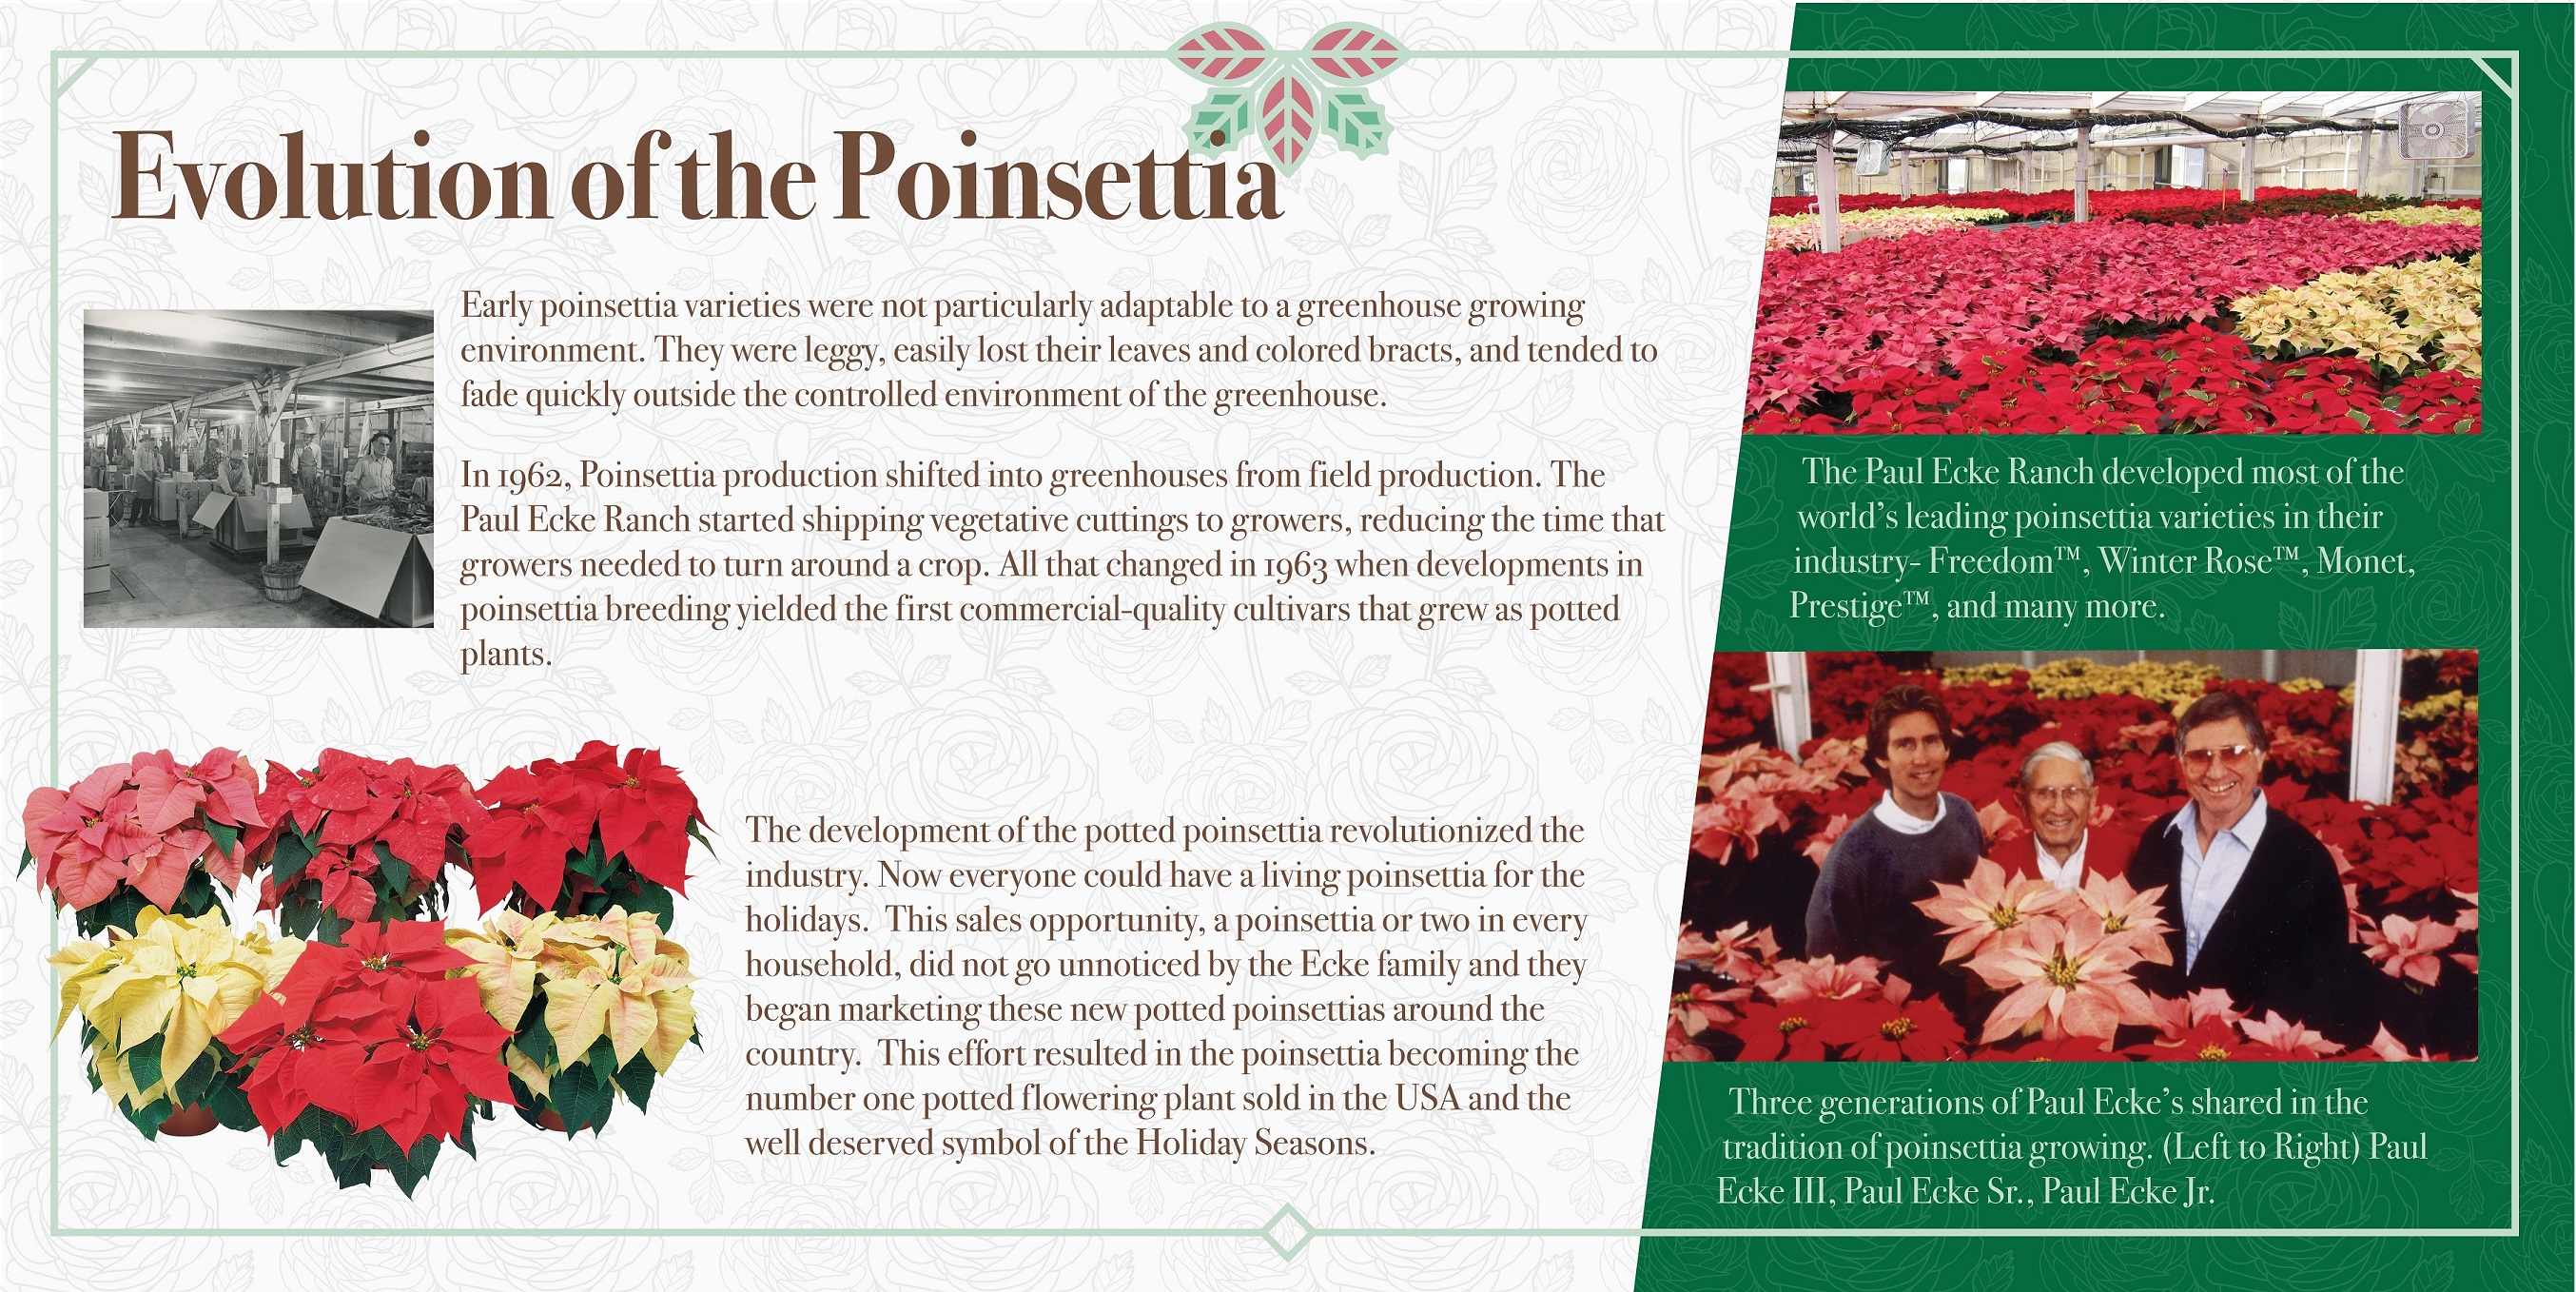 Evolution of the Poinsettia